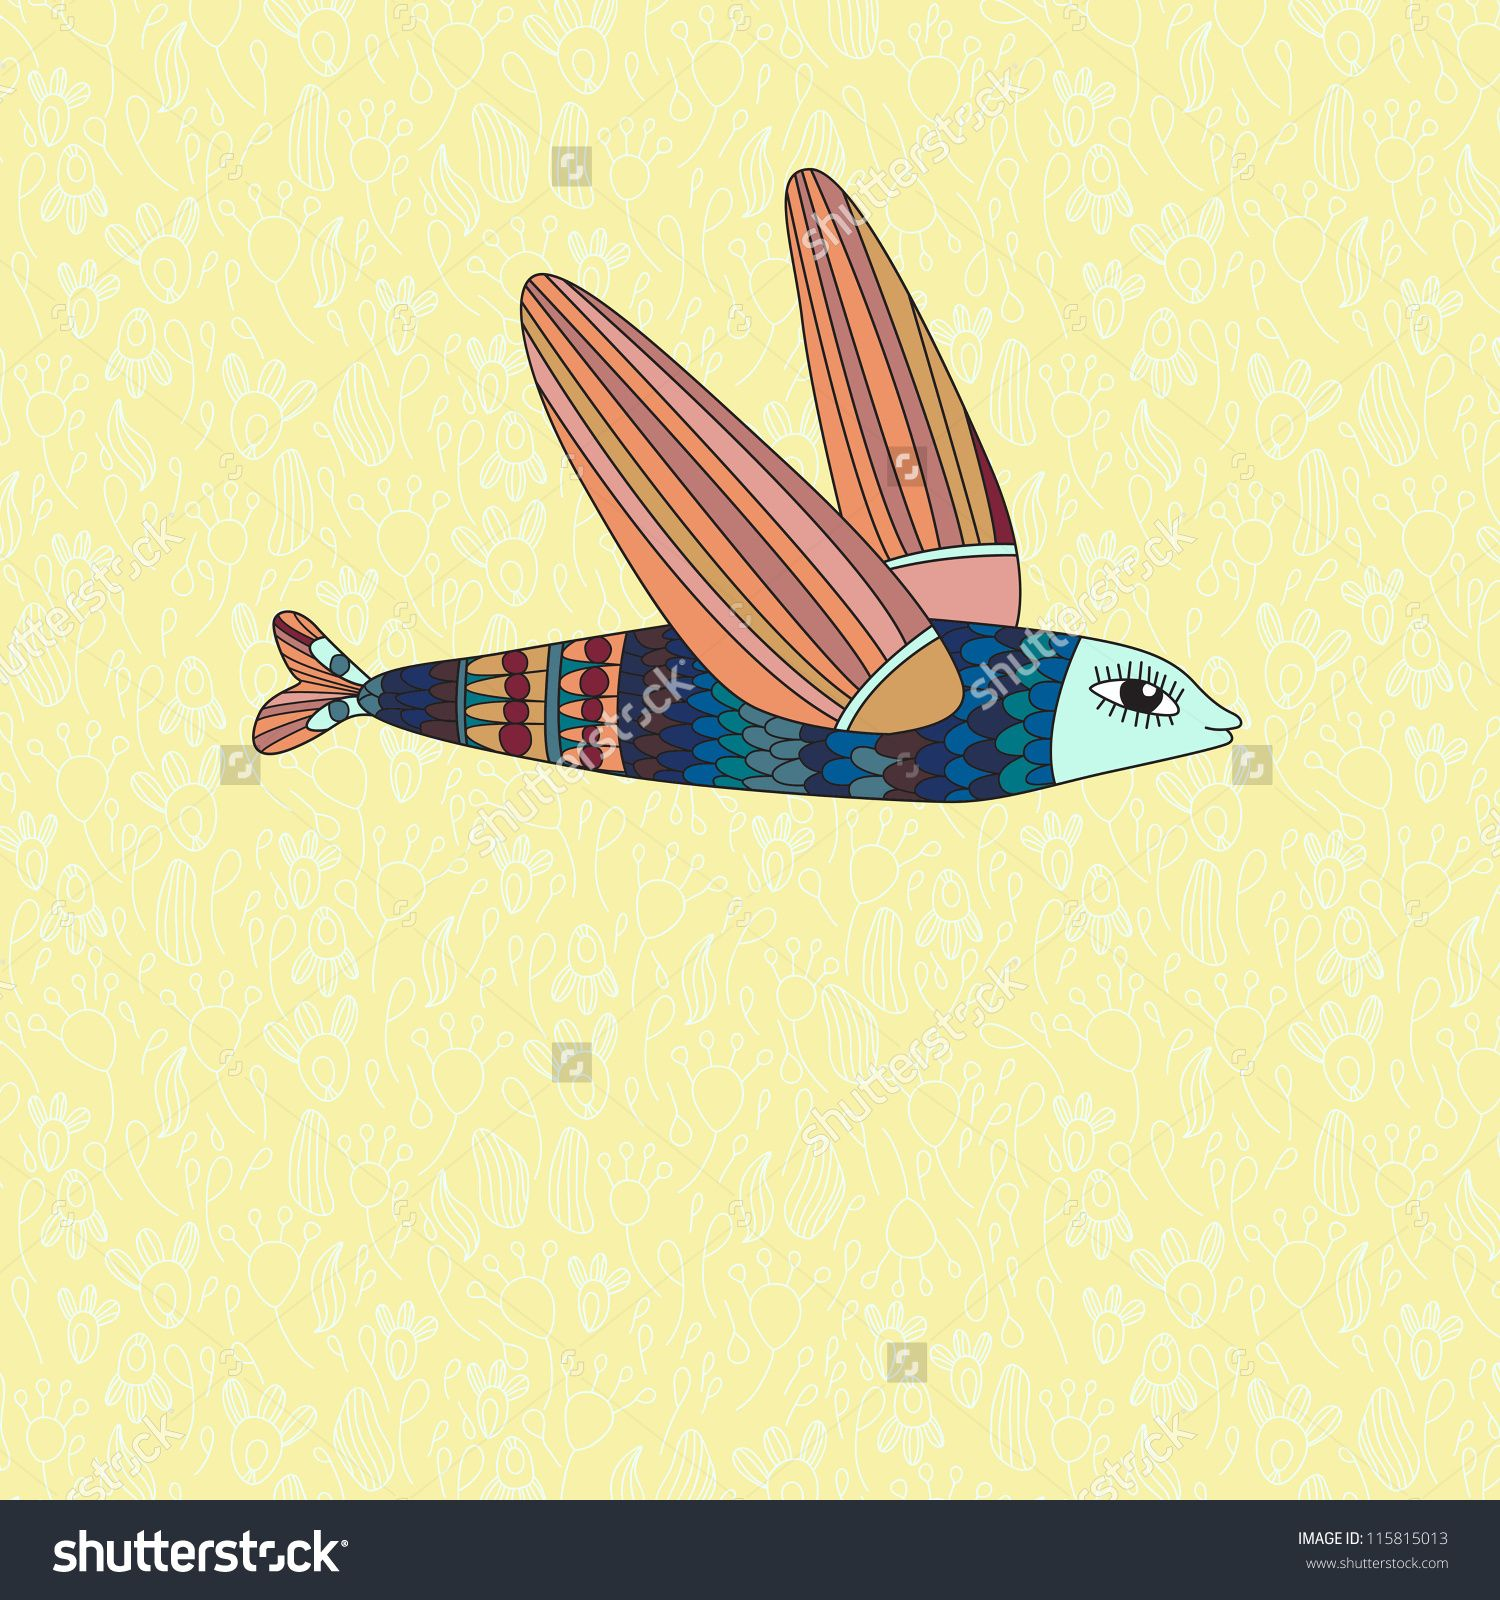 http://image.shutterstock.com/z/stock-vector-illustration-with-flying-fish-vector-115815013.jpg